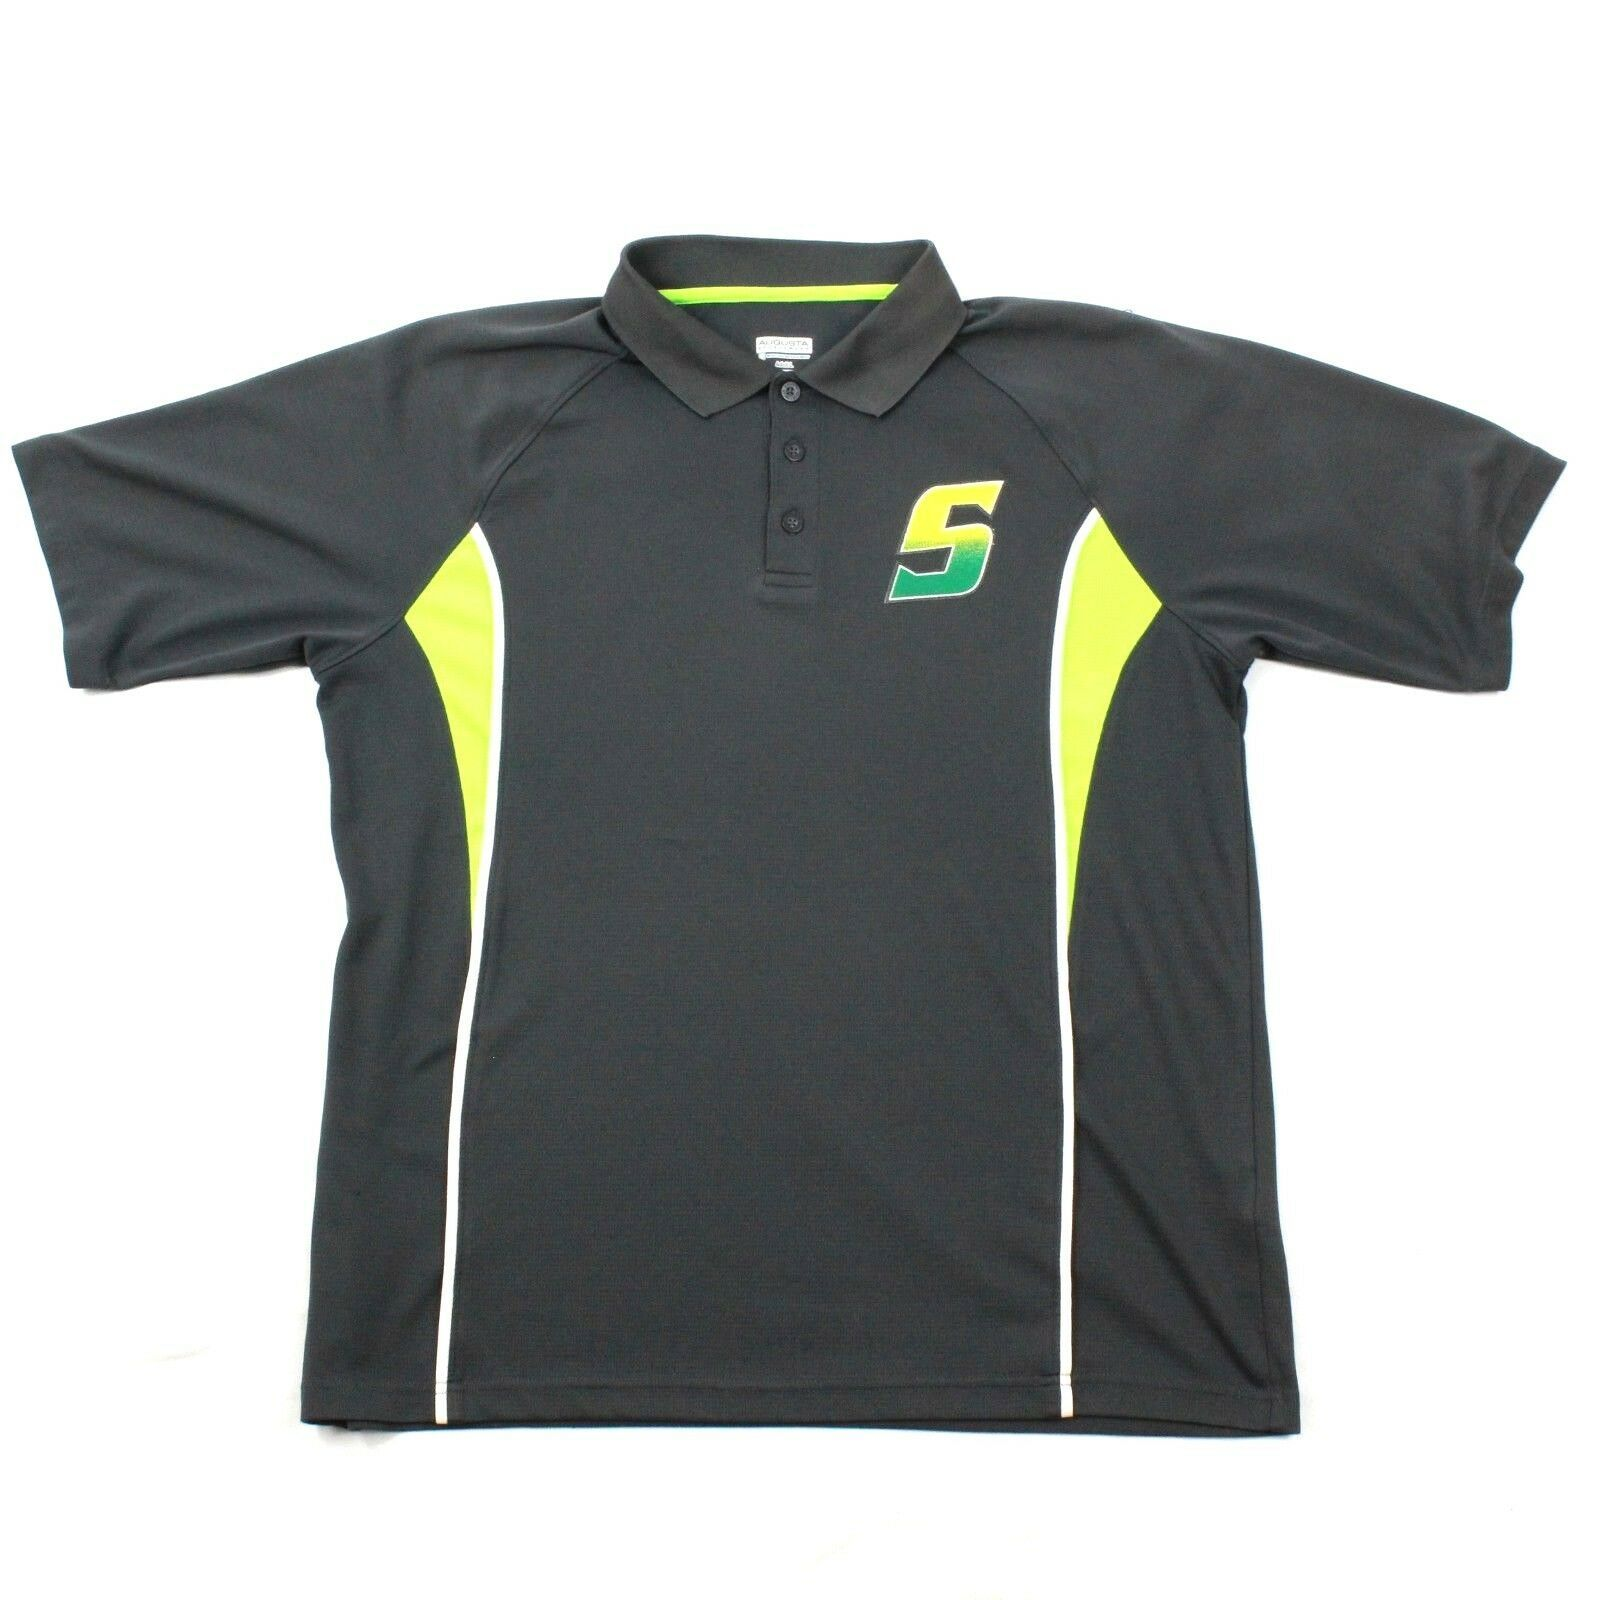 Primary image for Augusta Sportswear Active Polo Shirt Adult Large Moisture Management Relaxed Fit